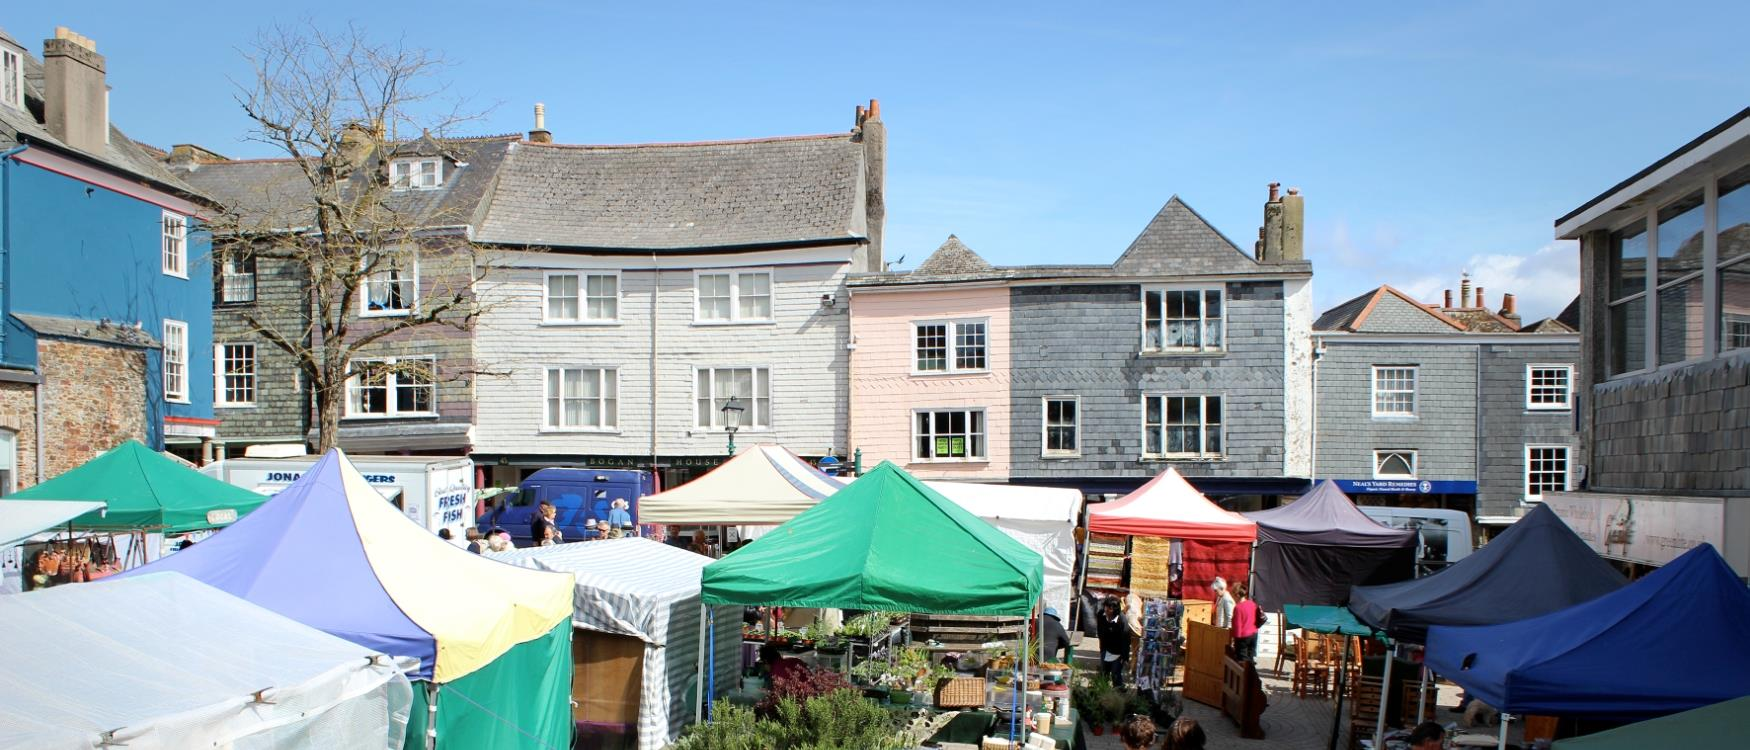 Totnes Market in Civic Square